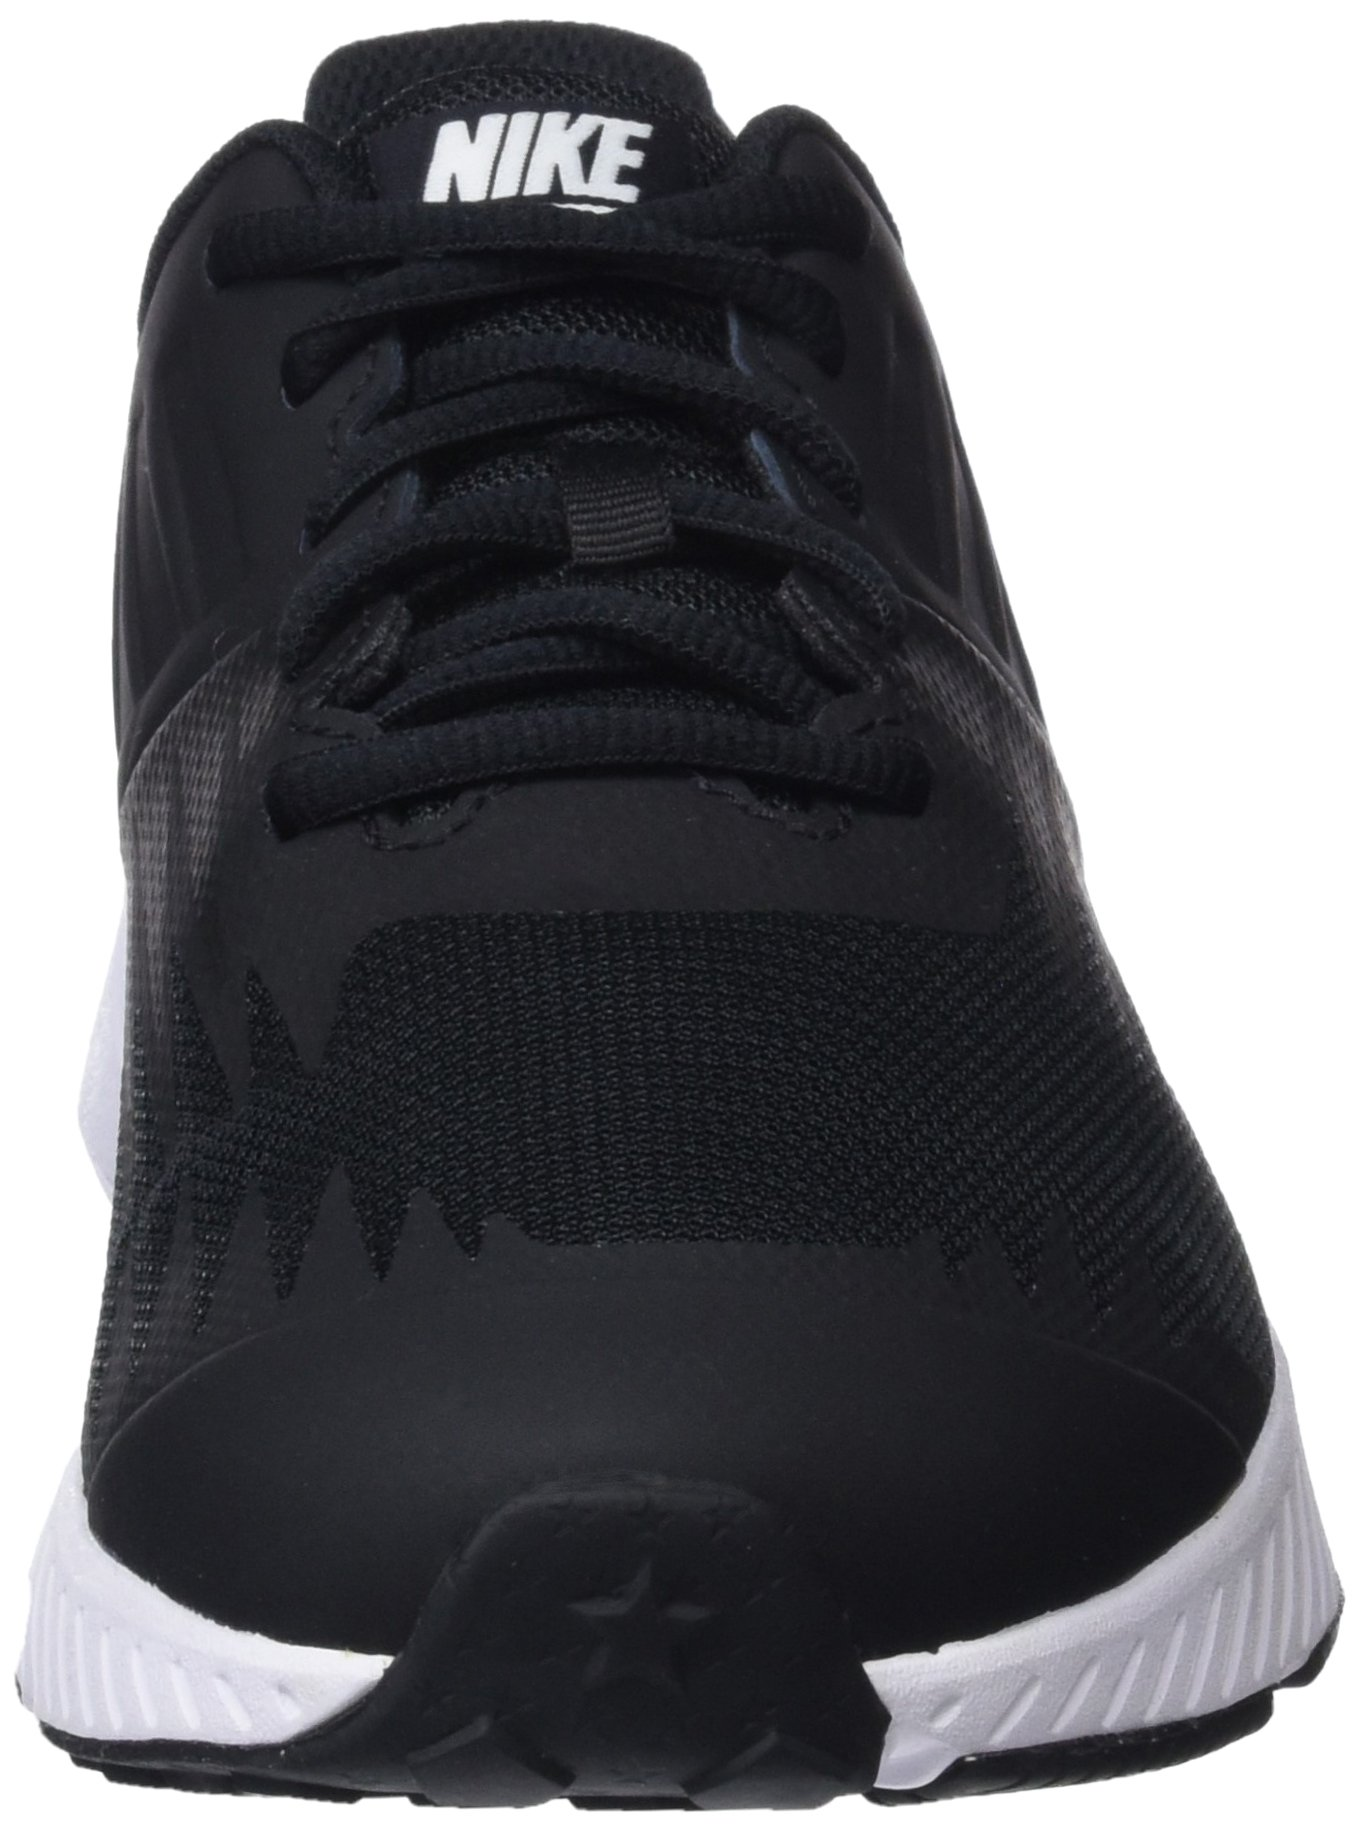 Nike Kids' Grade School Star Runner Running Shoes (3.5, Black/White) by Nike (Image #4)